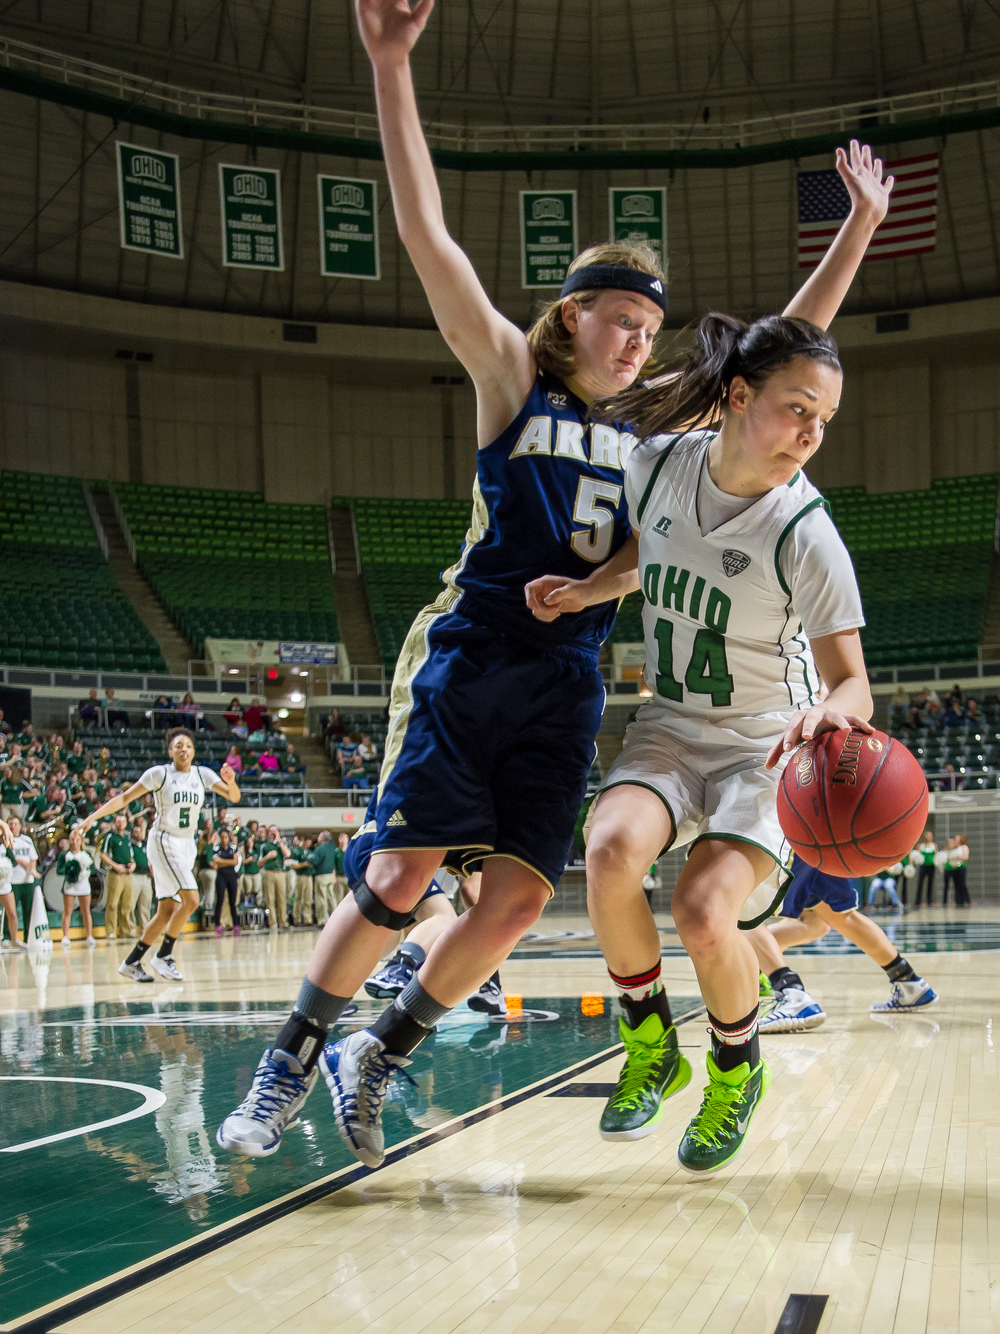 Ohio University Women's Basketball player Kat Yelle, of Geneva, Illinois, attempts to score amidst the guarding tactics of University of Akron freshman Kerri McMahan, of Novi, Michigan. The Bobcats pulled off a win 72-60 against the Zips at the Convocation Center in Athens, Ohio, on January 28, 2015.